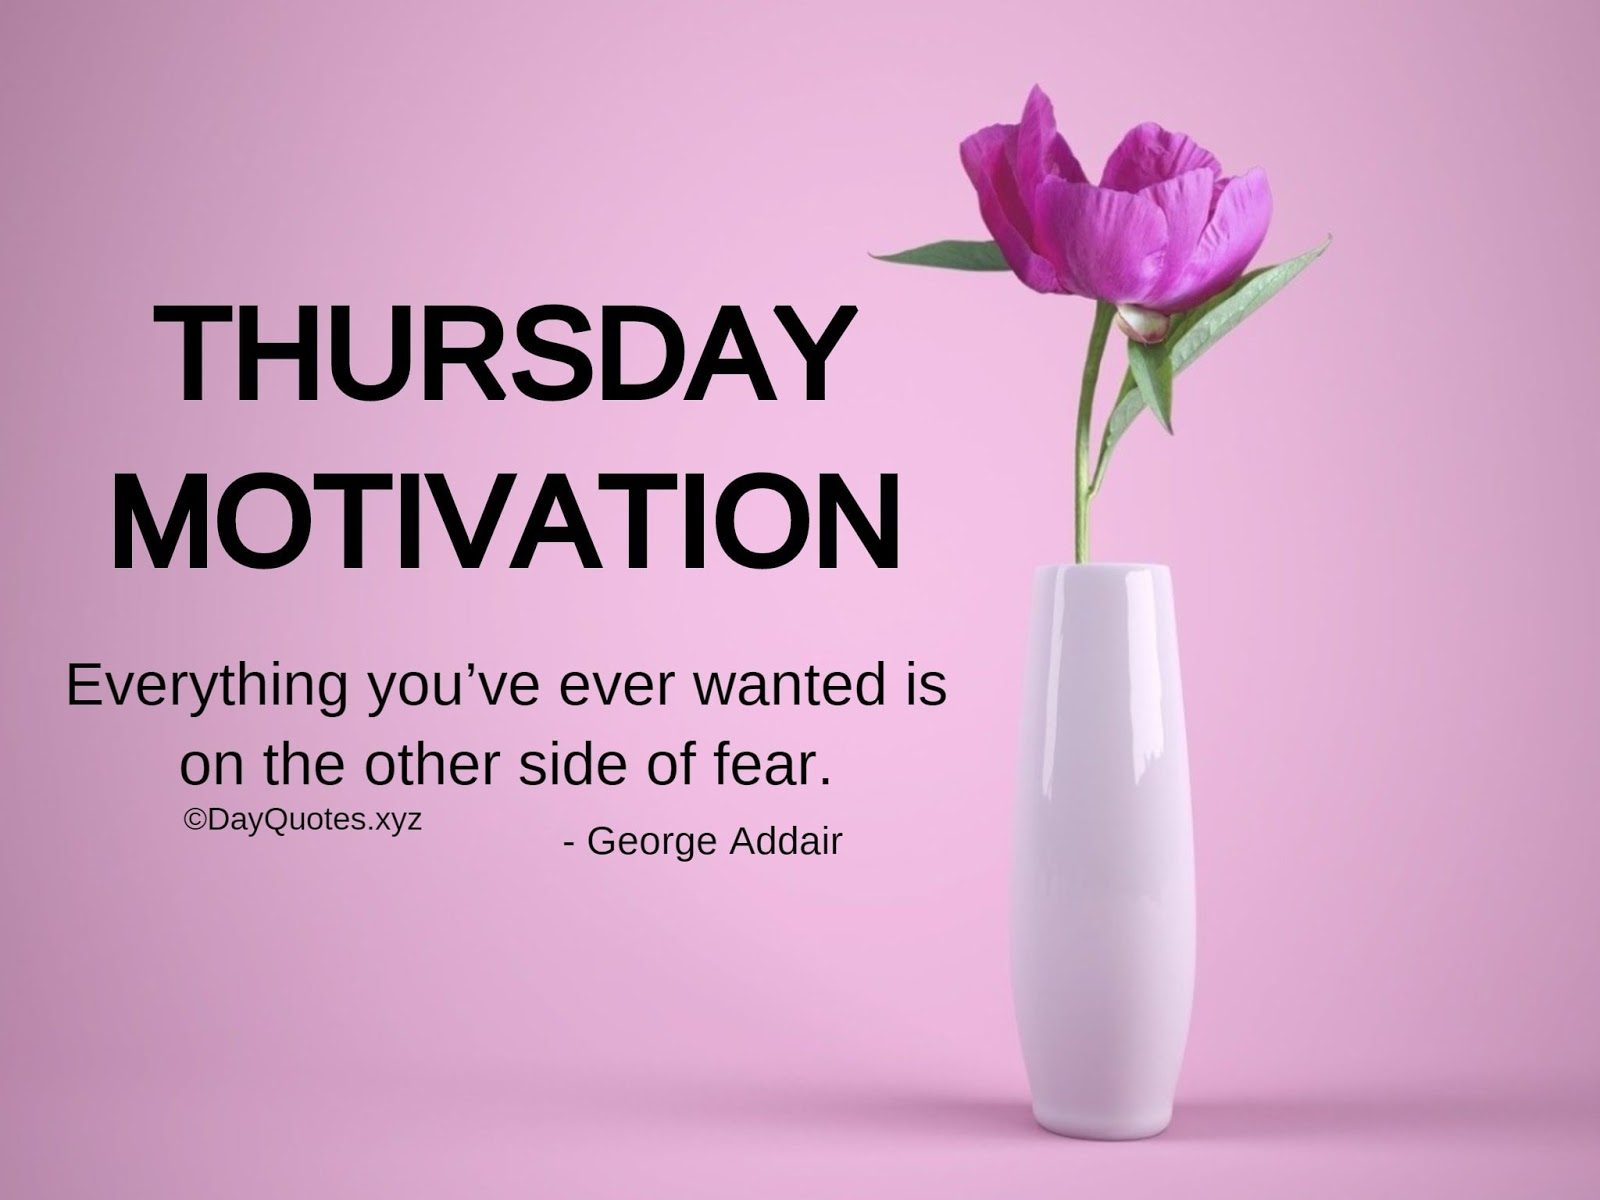 Motivational Thursday Quotes To Be Motivated & To Get Inspired